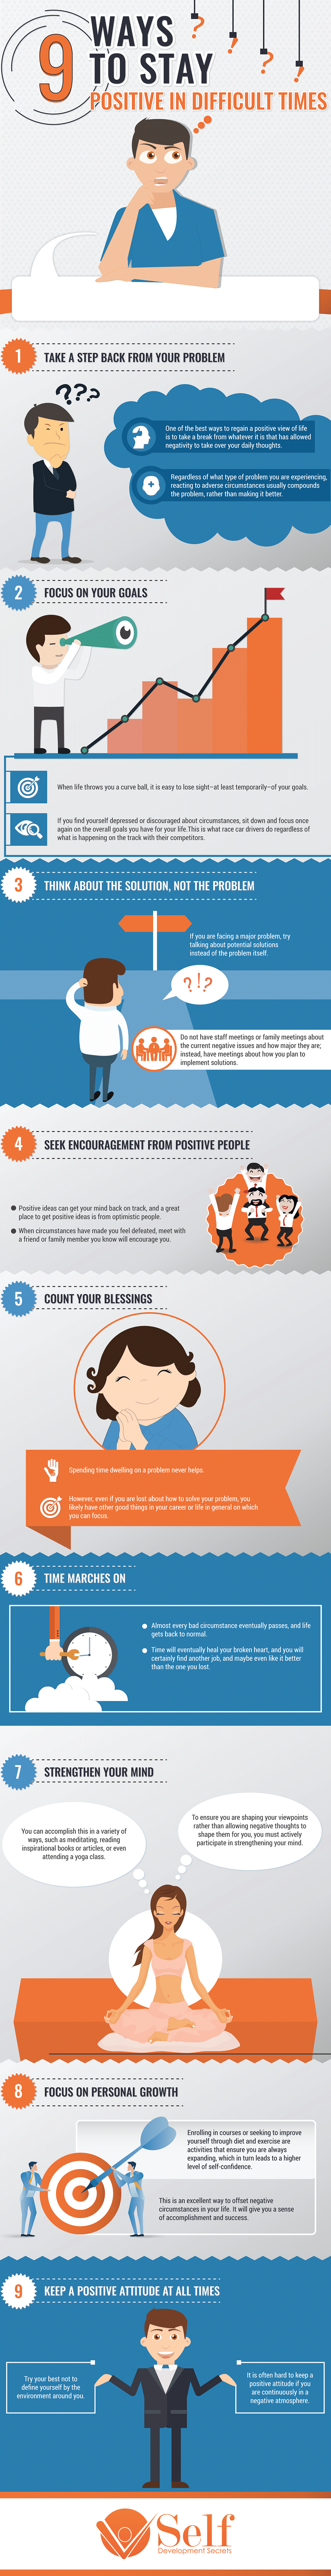 9 Ways To Stay Positive During Difficult Times [Infographic]